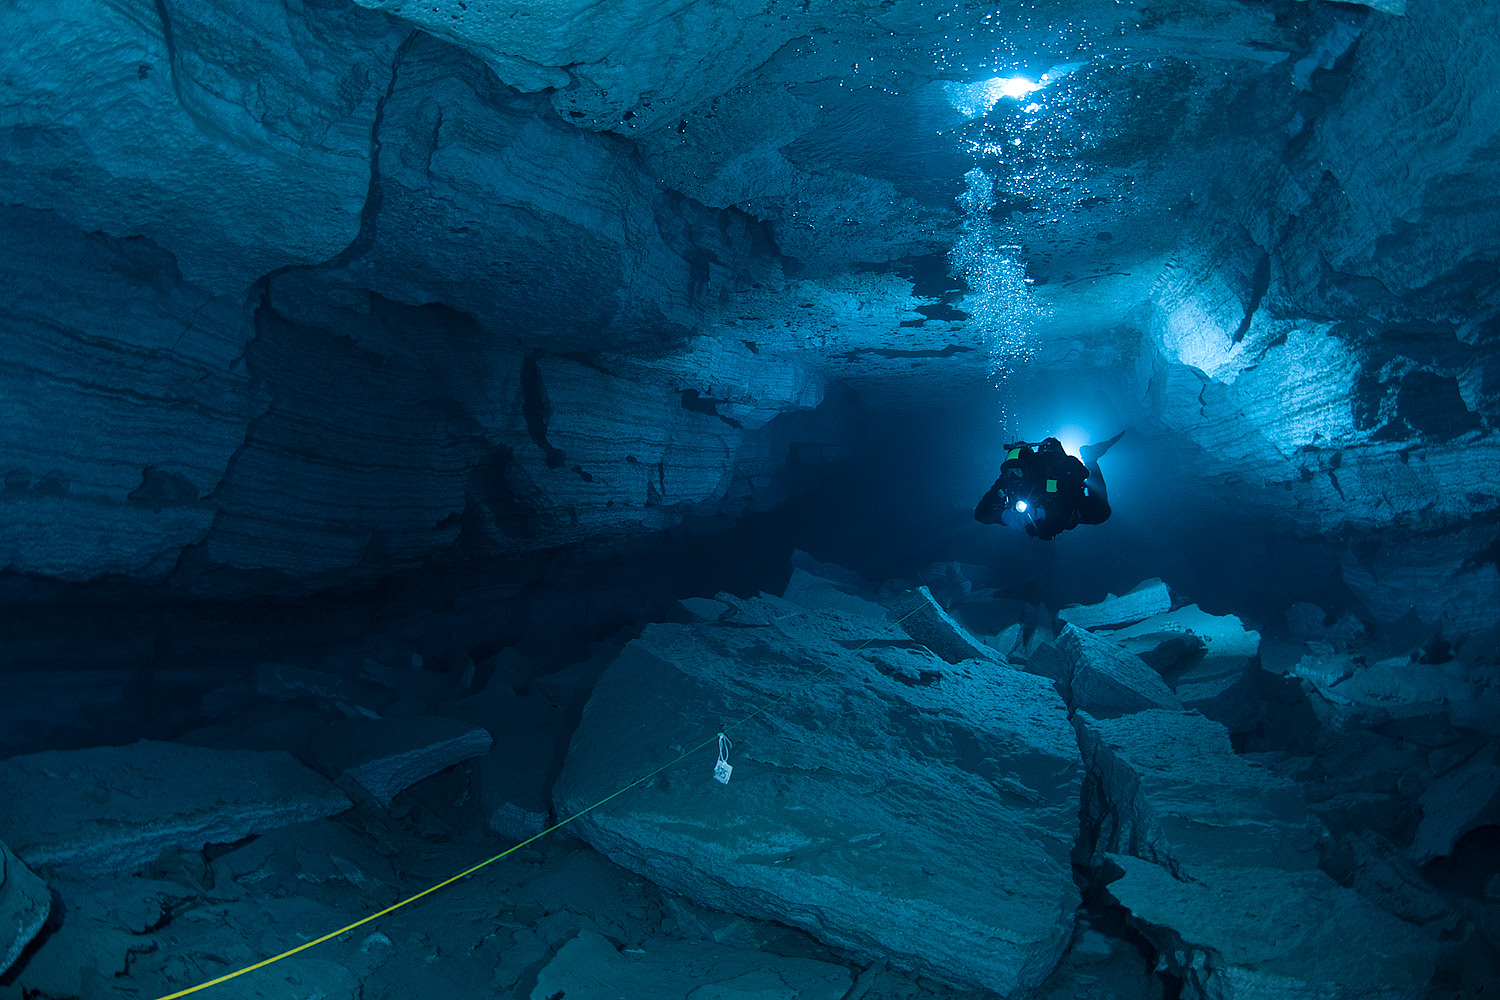 Orda Cave | New Stylish Wallpaper